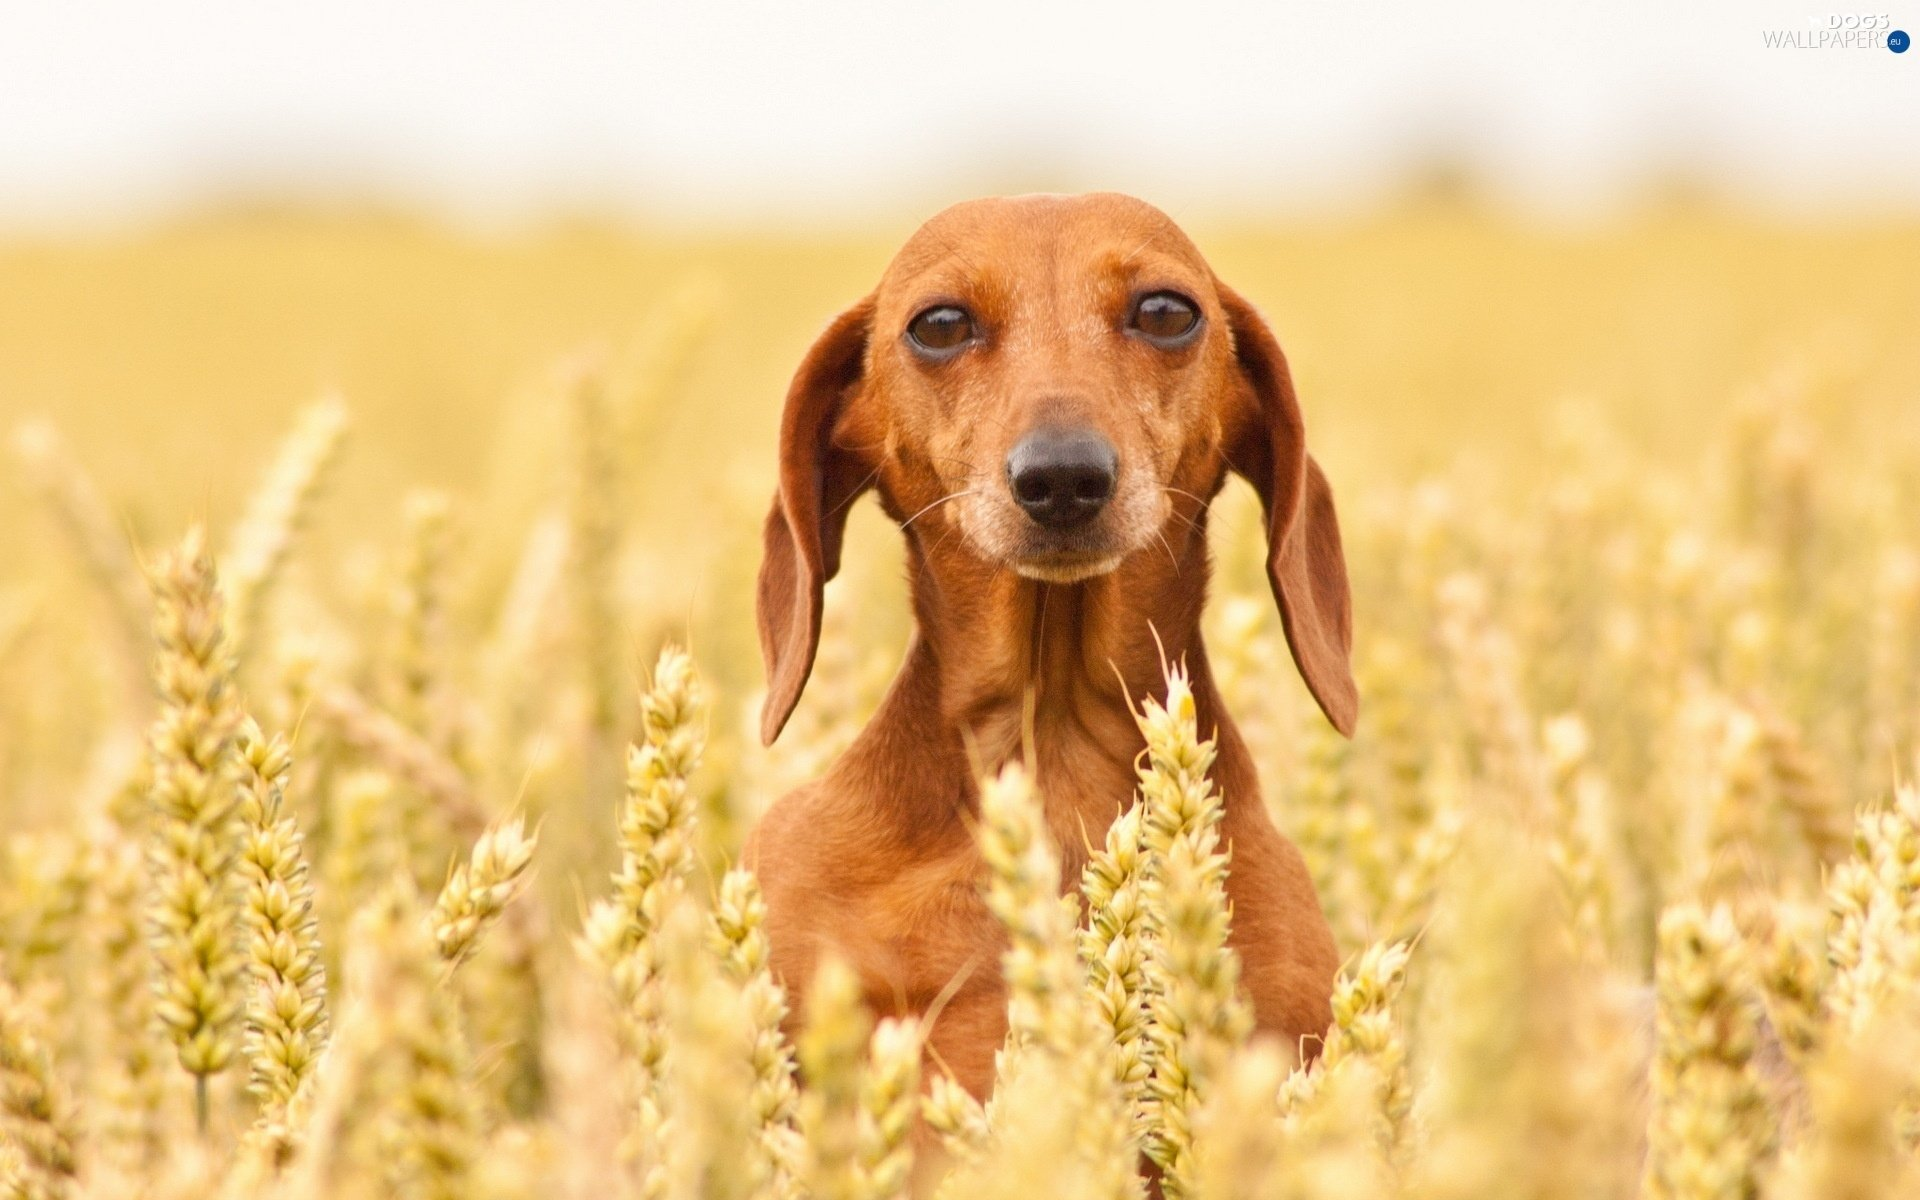 dachshund Shorthair dog Dogs wallpapers 1920x1200 1920x1200